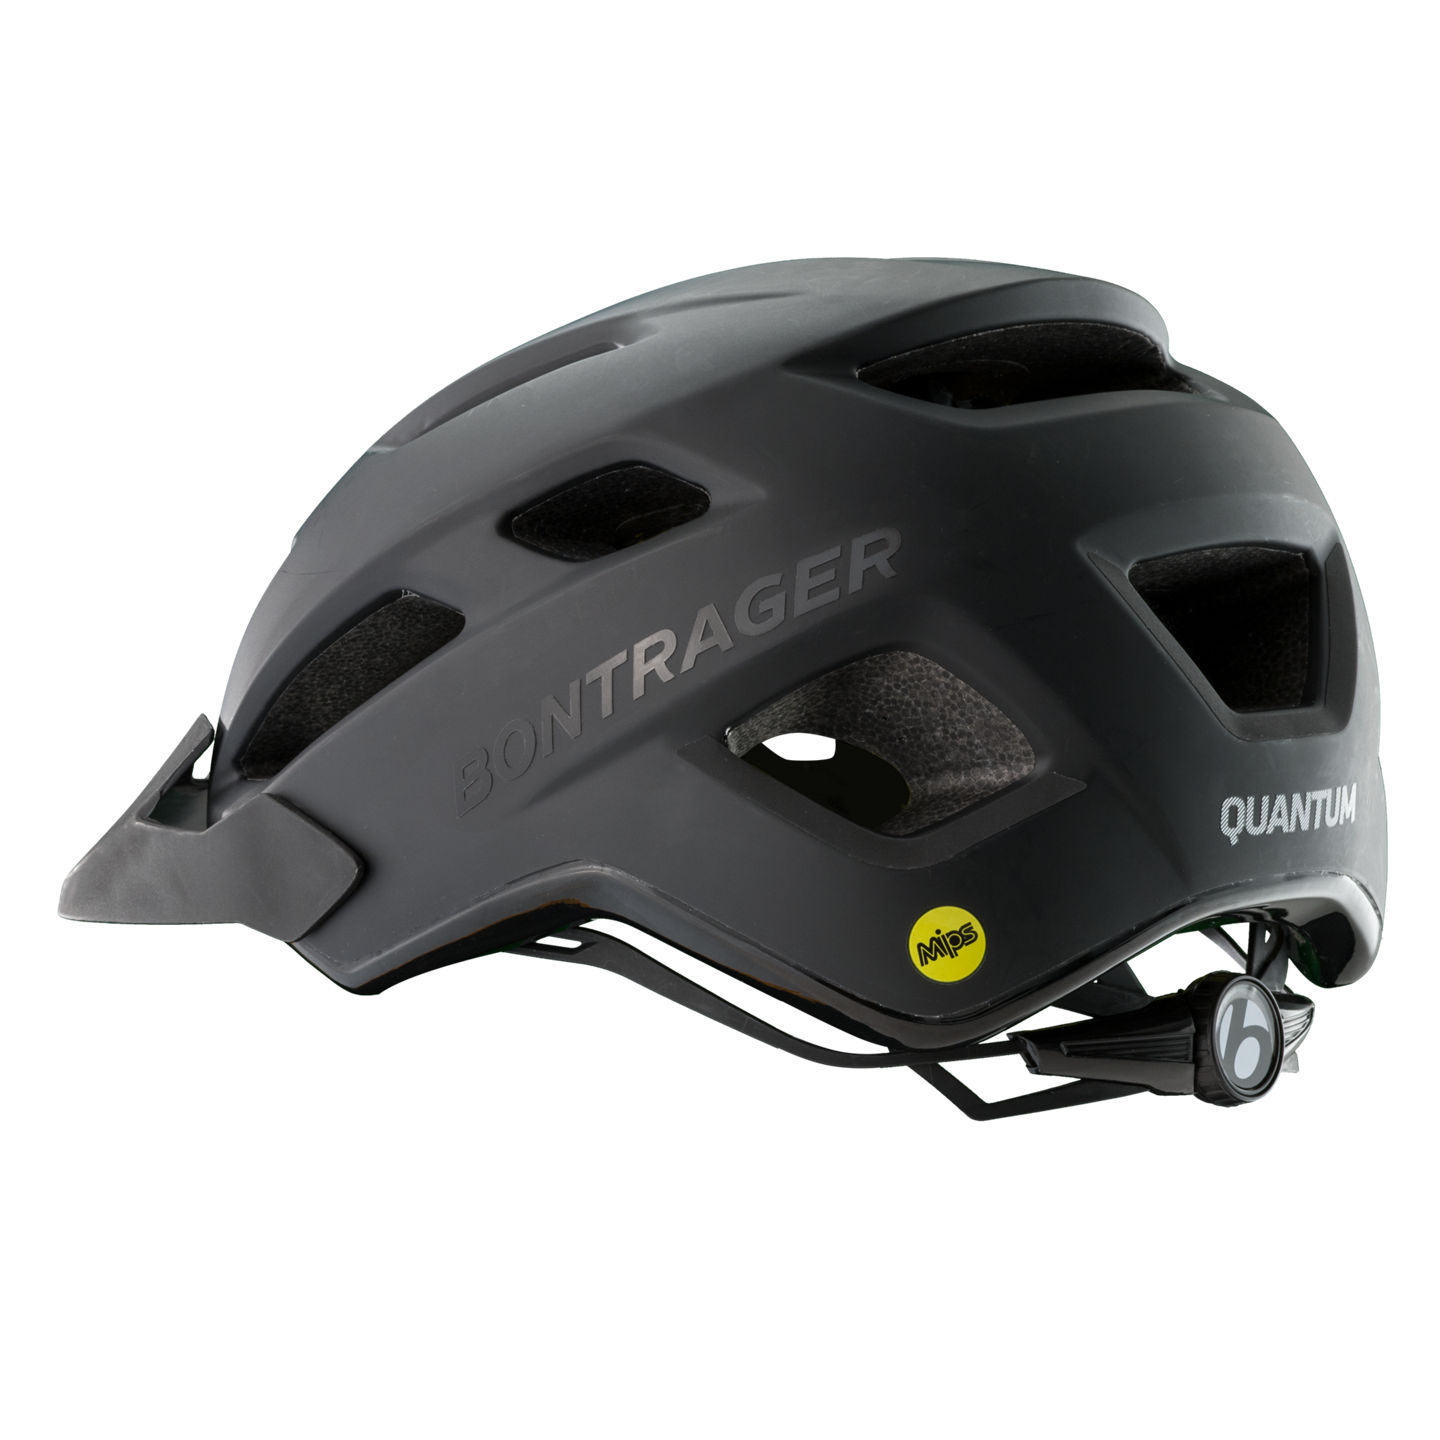 offer discounts classic style new high quality Bontrager Quantum MIPS Bike Helmet - Northern Cycle Ajax, Ontario